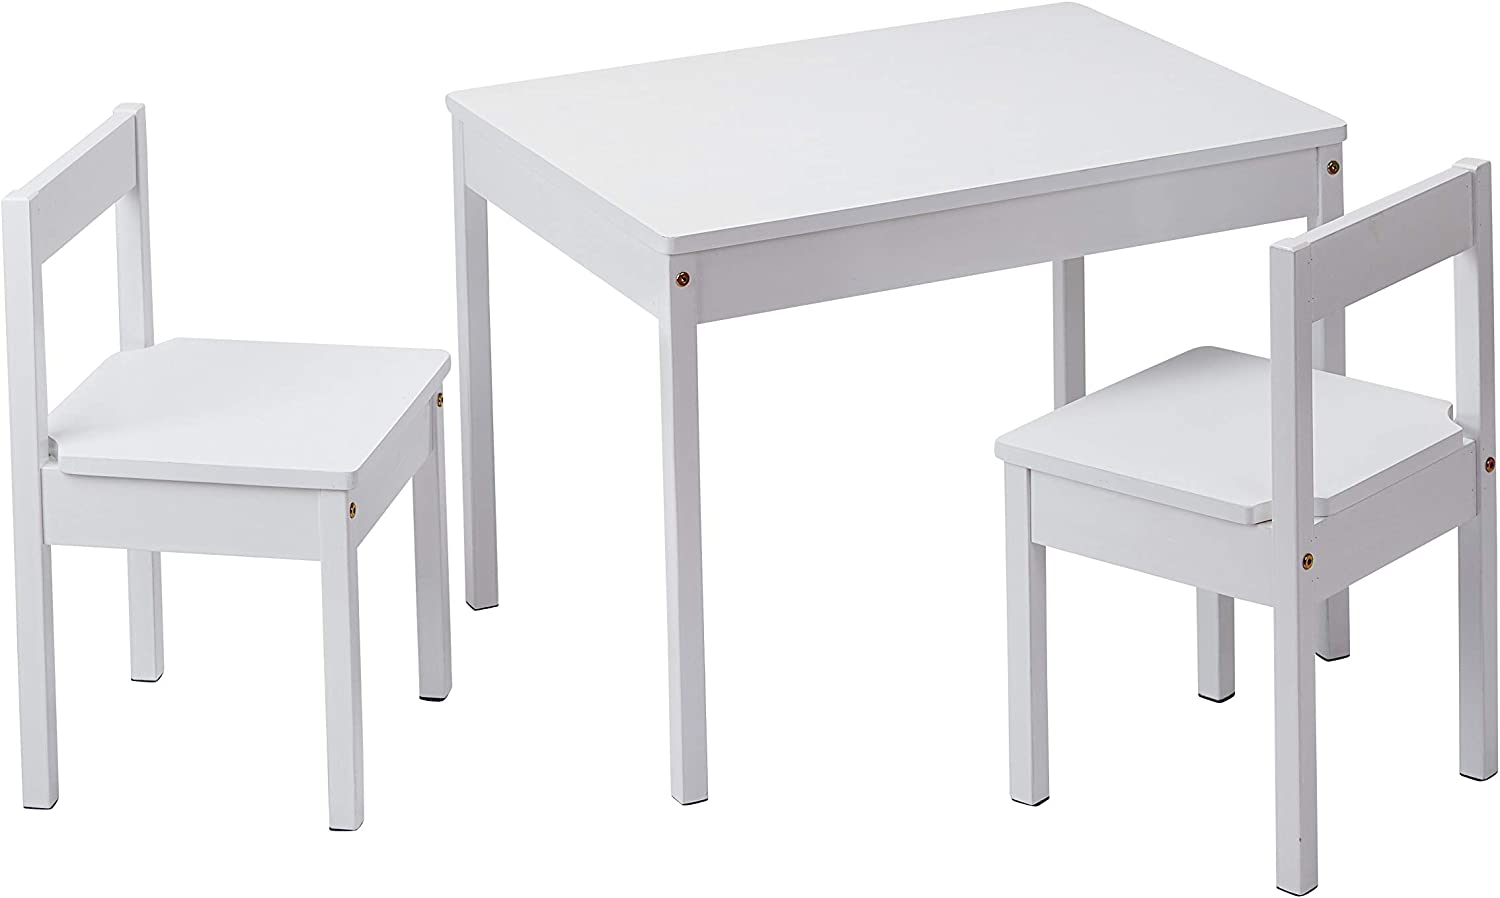 AmazonBasics Solid Wood Kiddie Table Set with Two Chairs, White